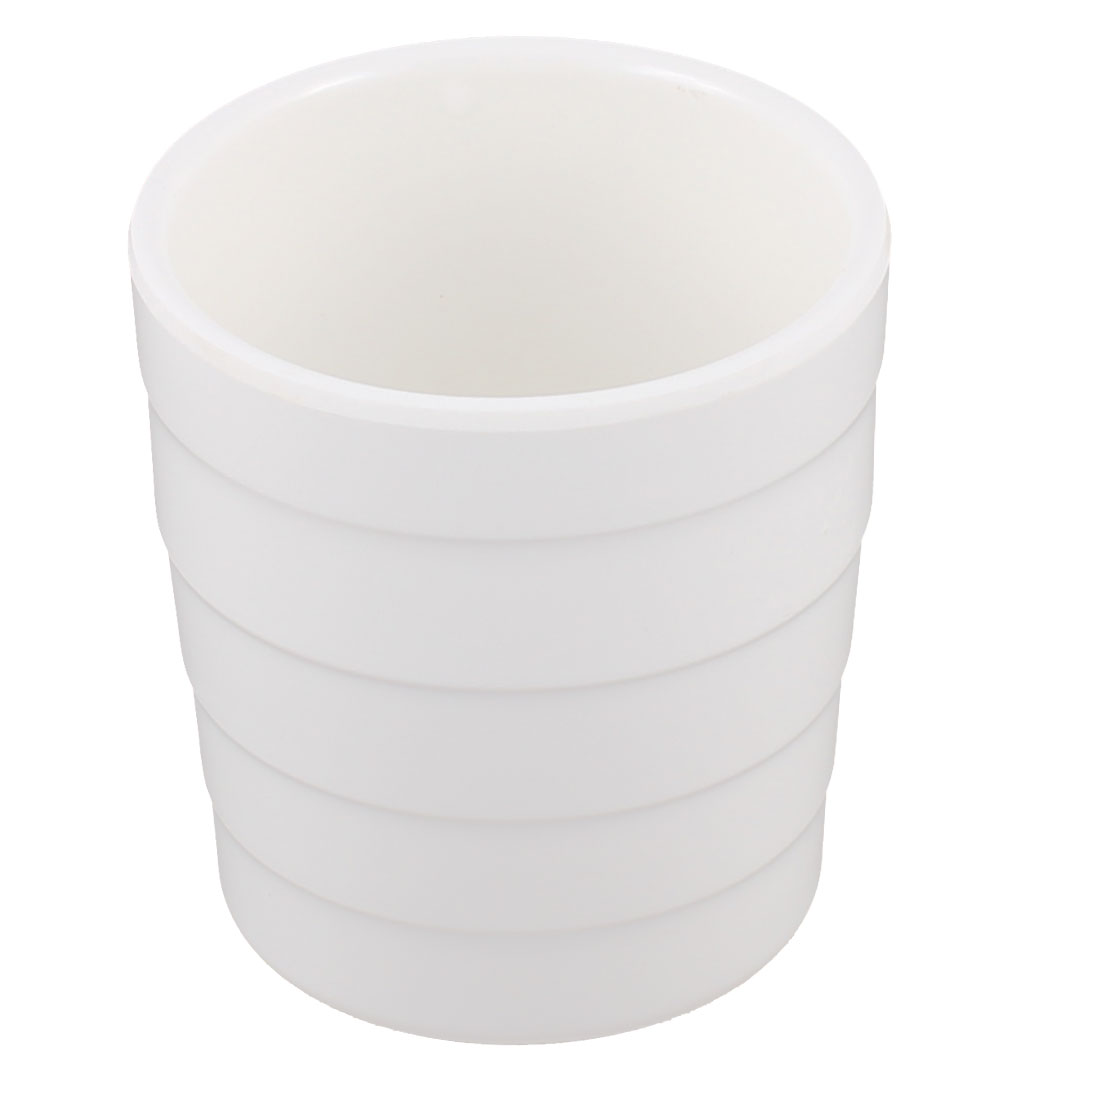 Home Plastic Water Beverage Drinking Cup Mug White